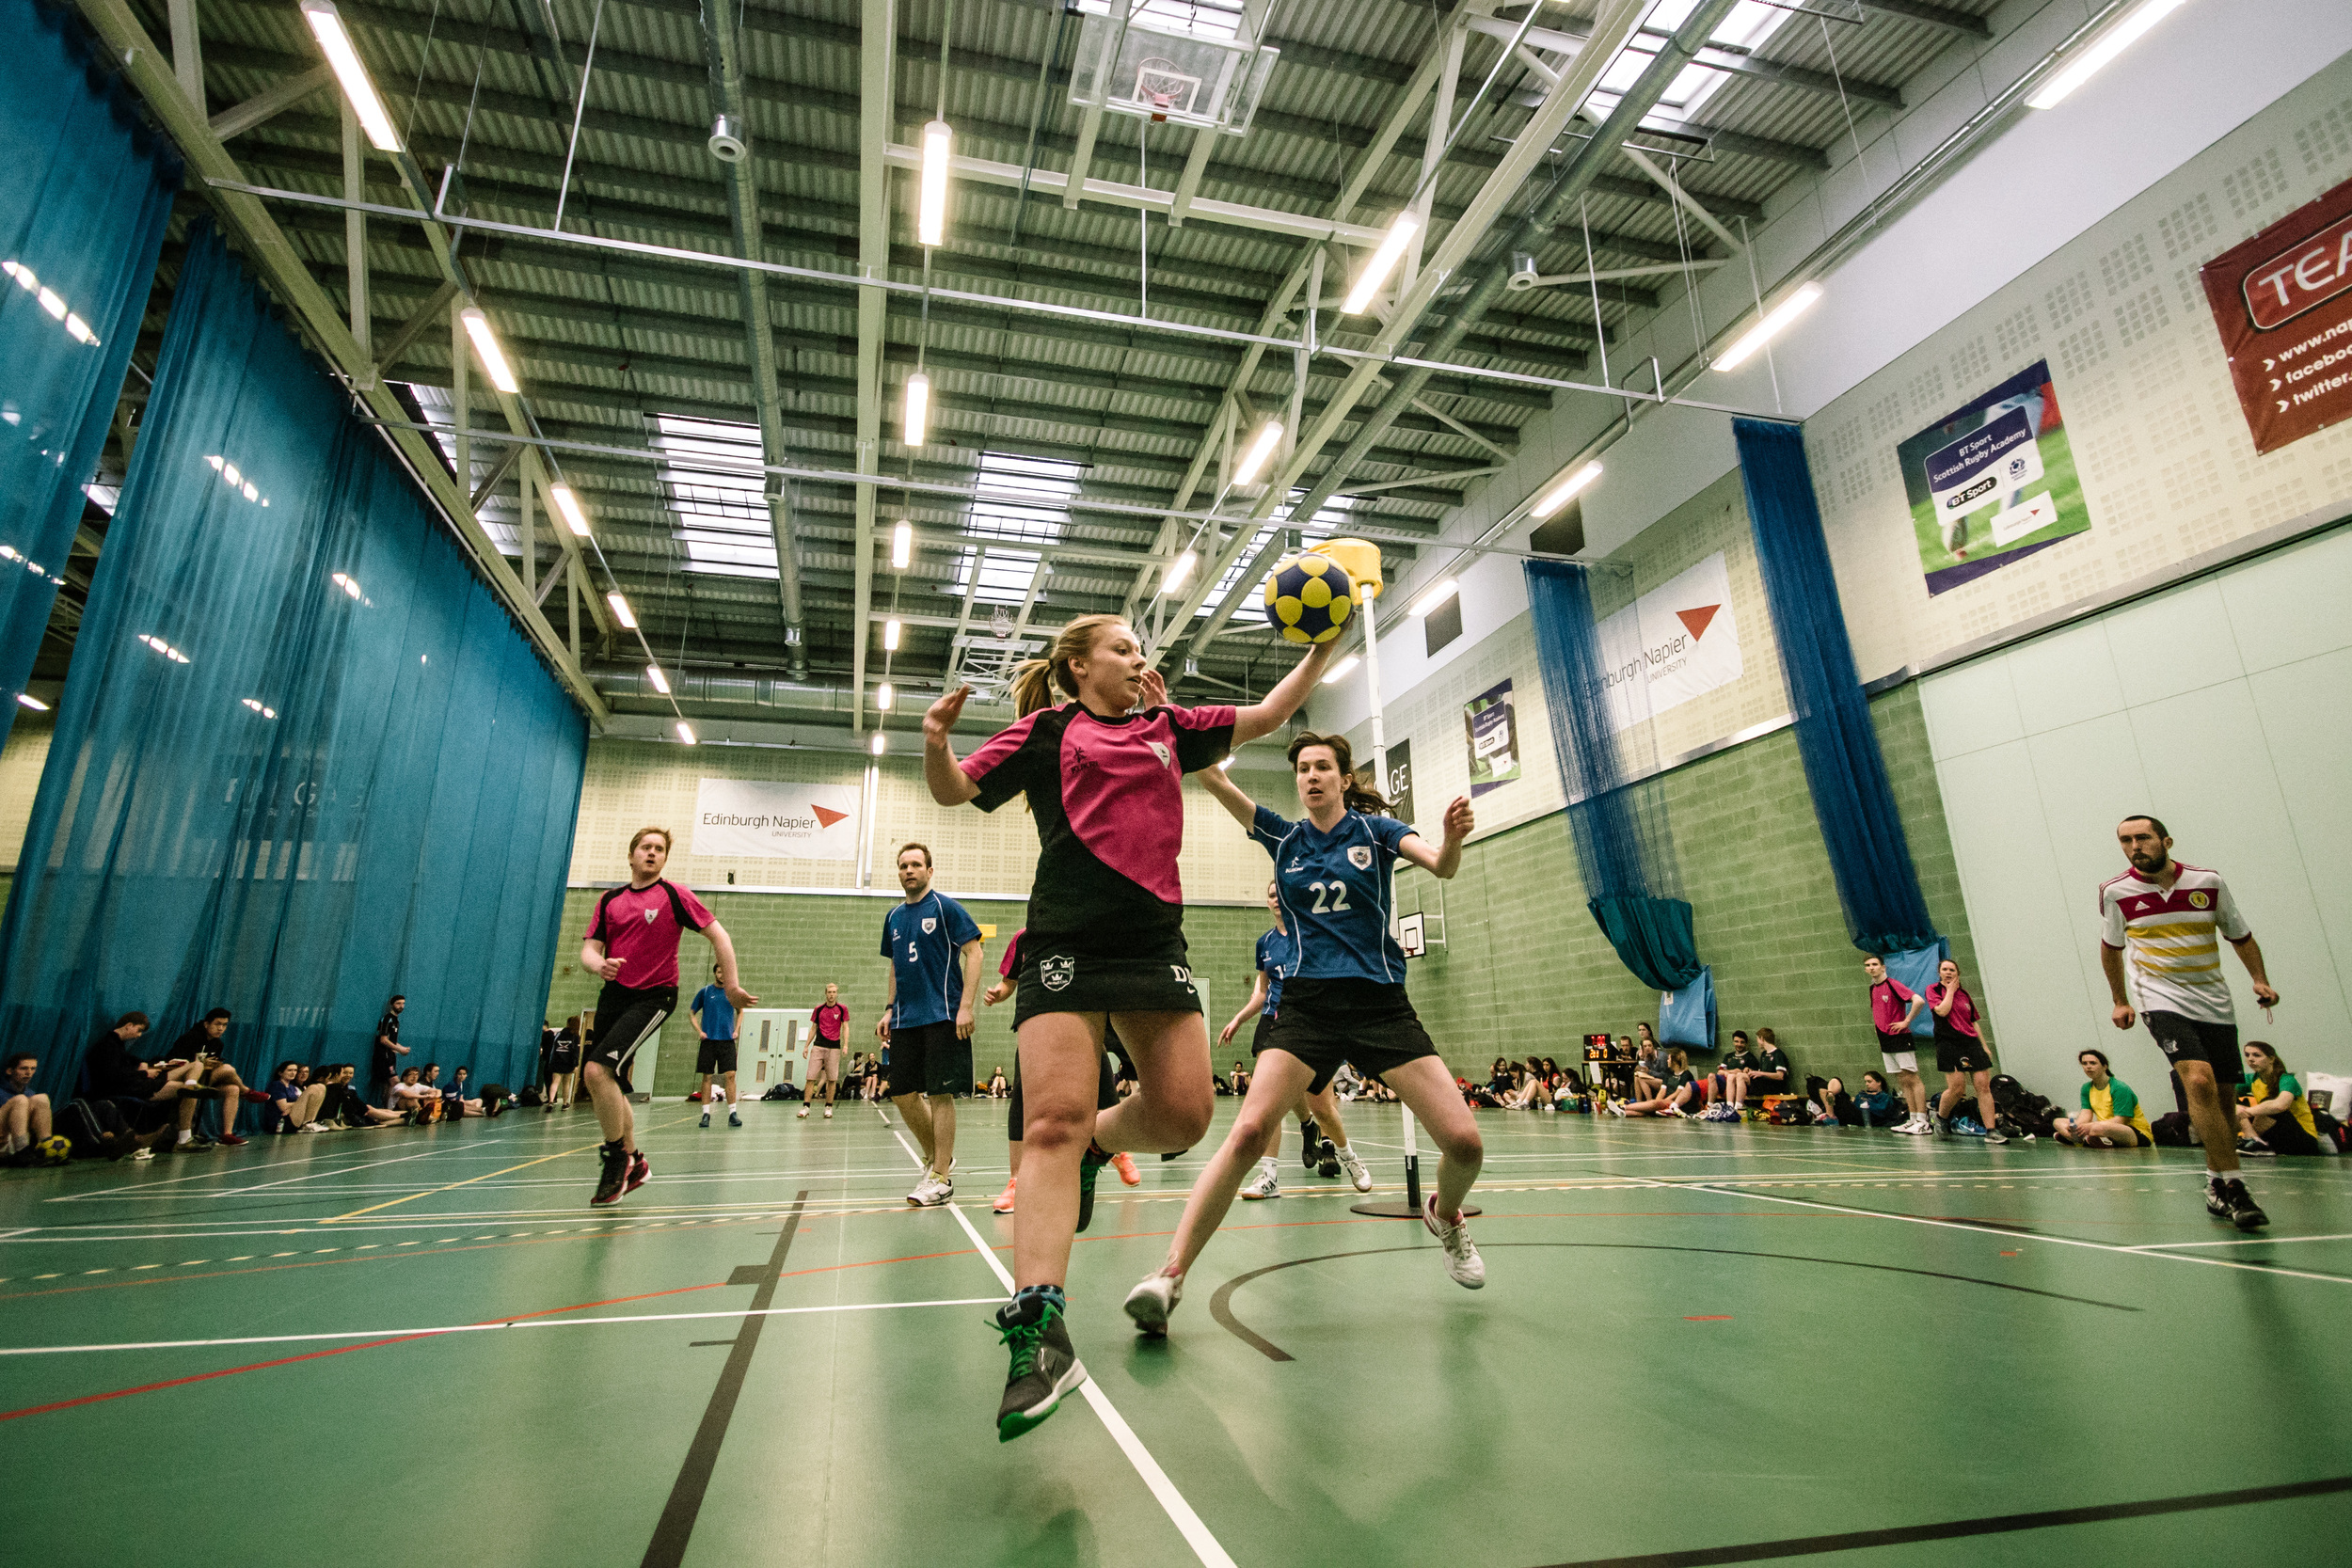 The Edinburgh International Korfball Tournament